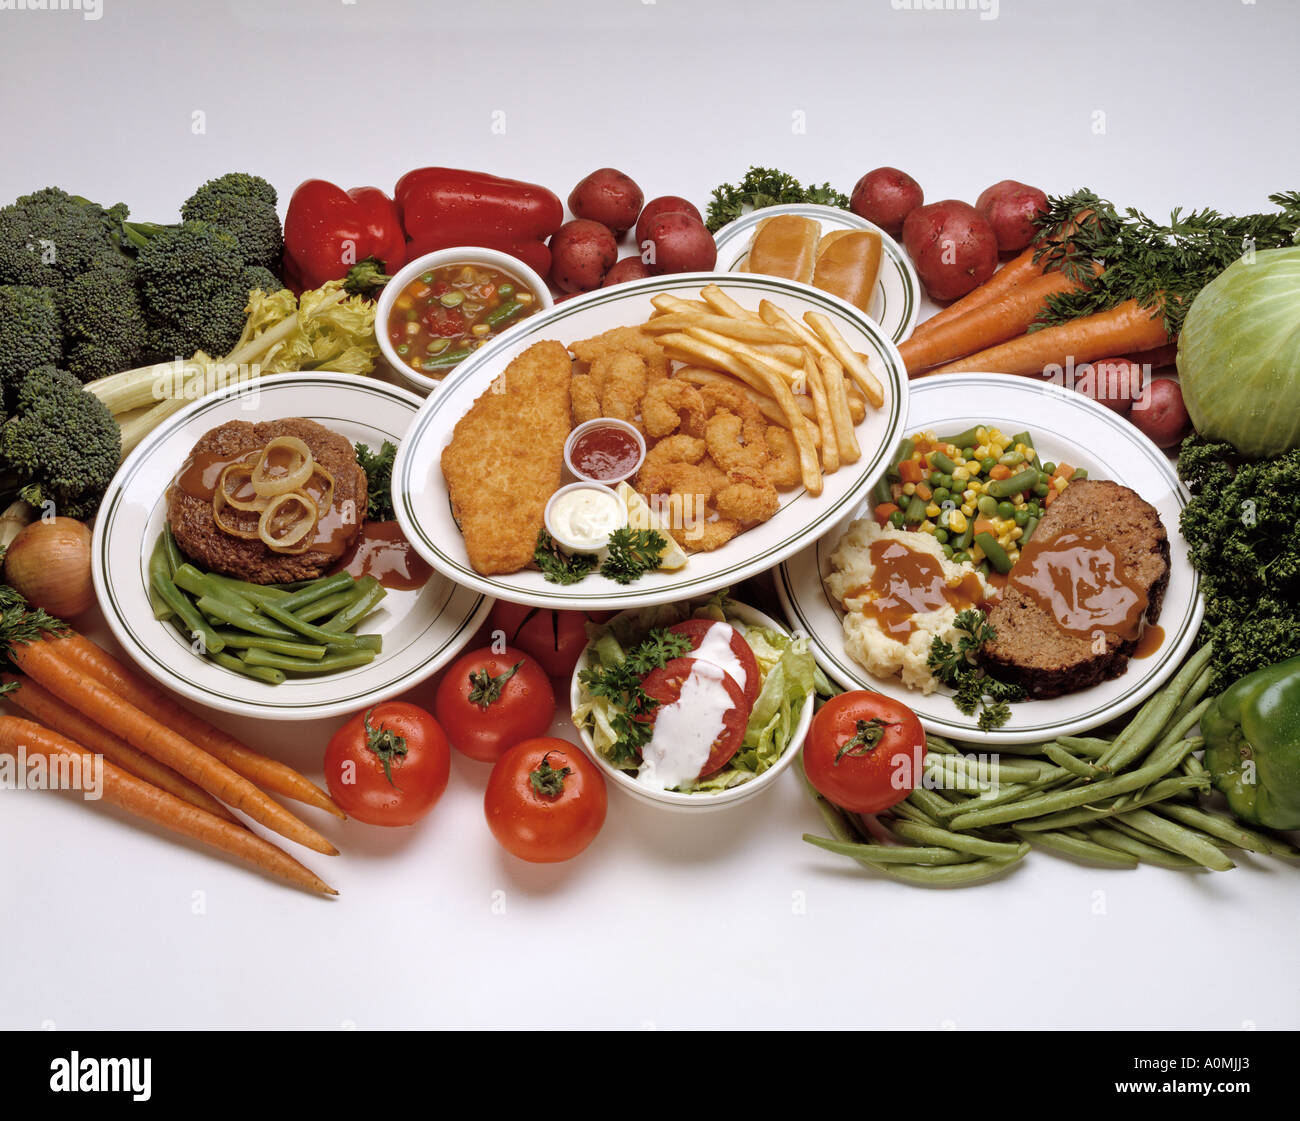 3 three dinner plate platters salisbury steak meat loaf meatloaf filet fish shrimp breaded seafood french fry fries vegetable & 3 three dinner plate platters salisbury steak meat loaf meatloaf ...